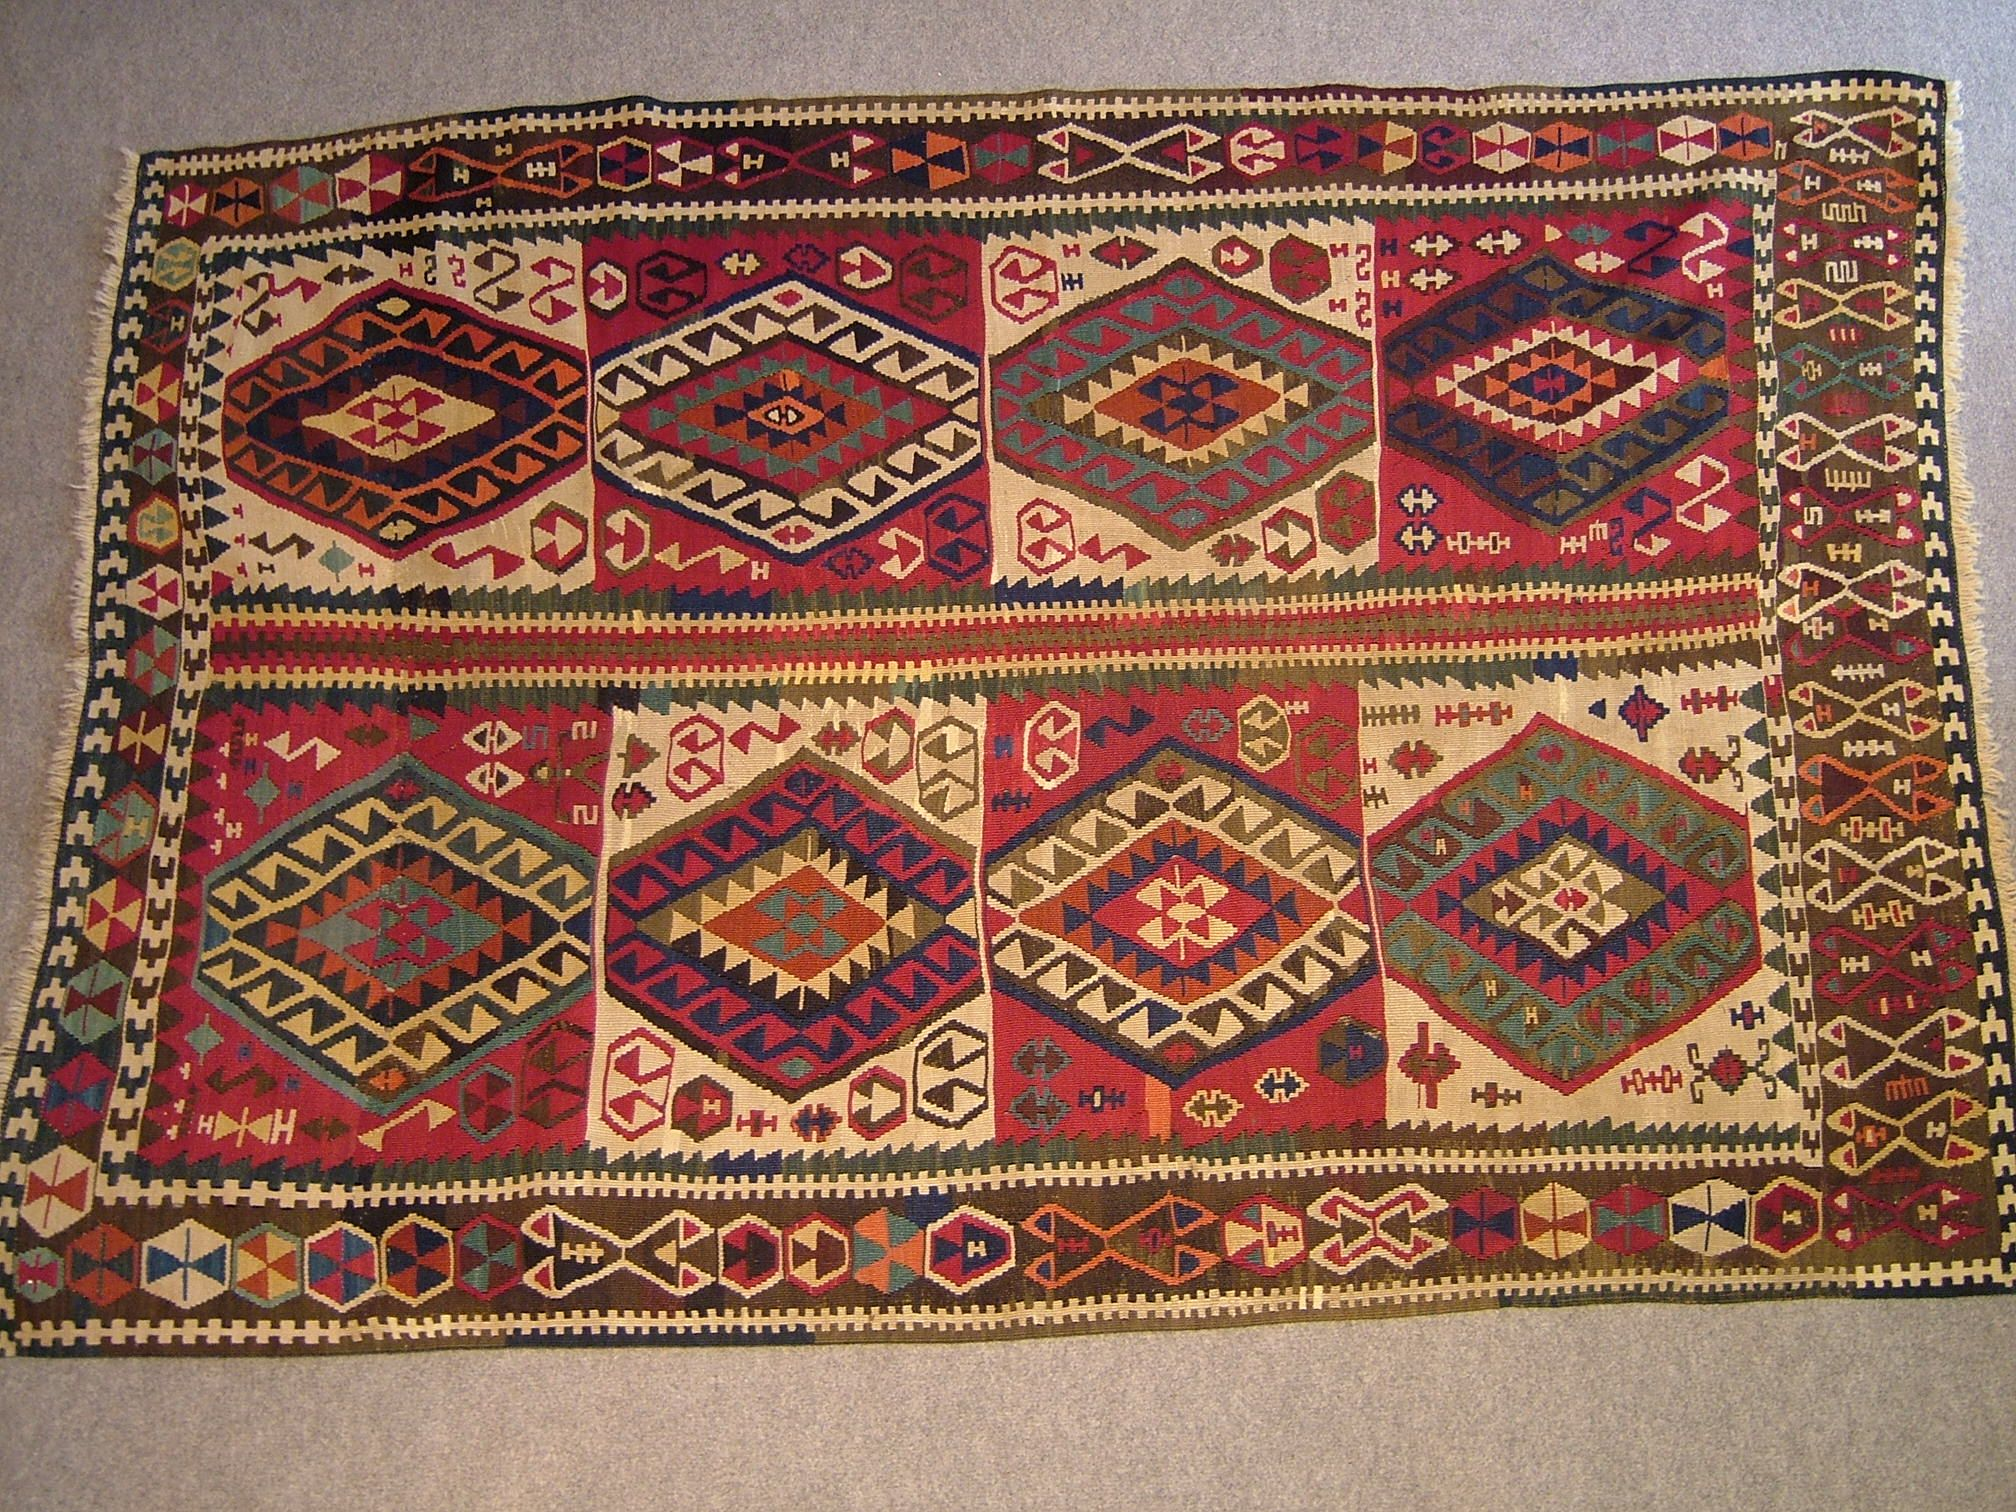 and designs or a in with rugs qarajeh very runner tent broken rug master called small november made geometric was north have type town of lines this qaradjeh west iran